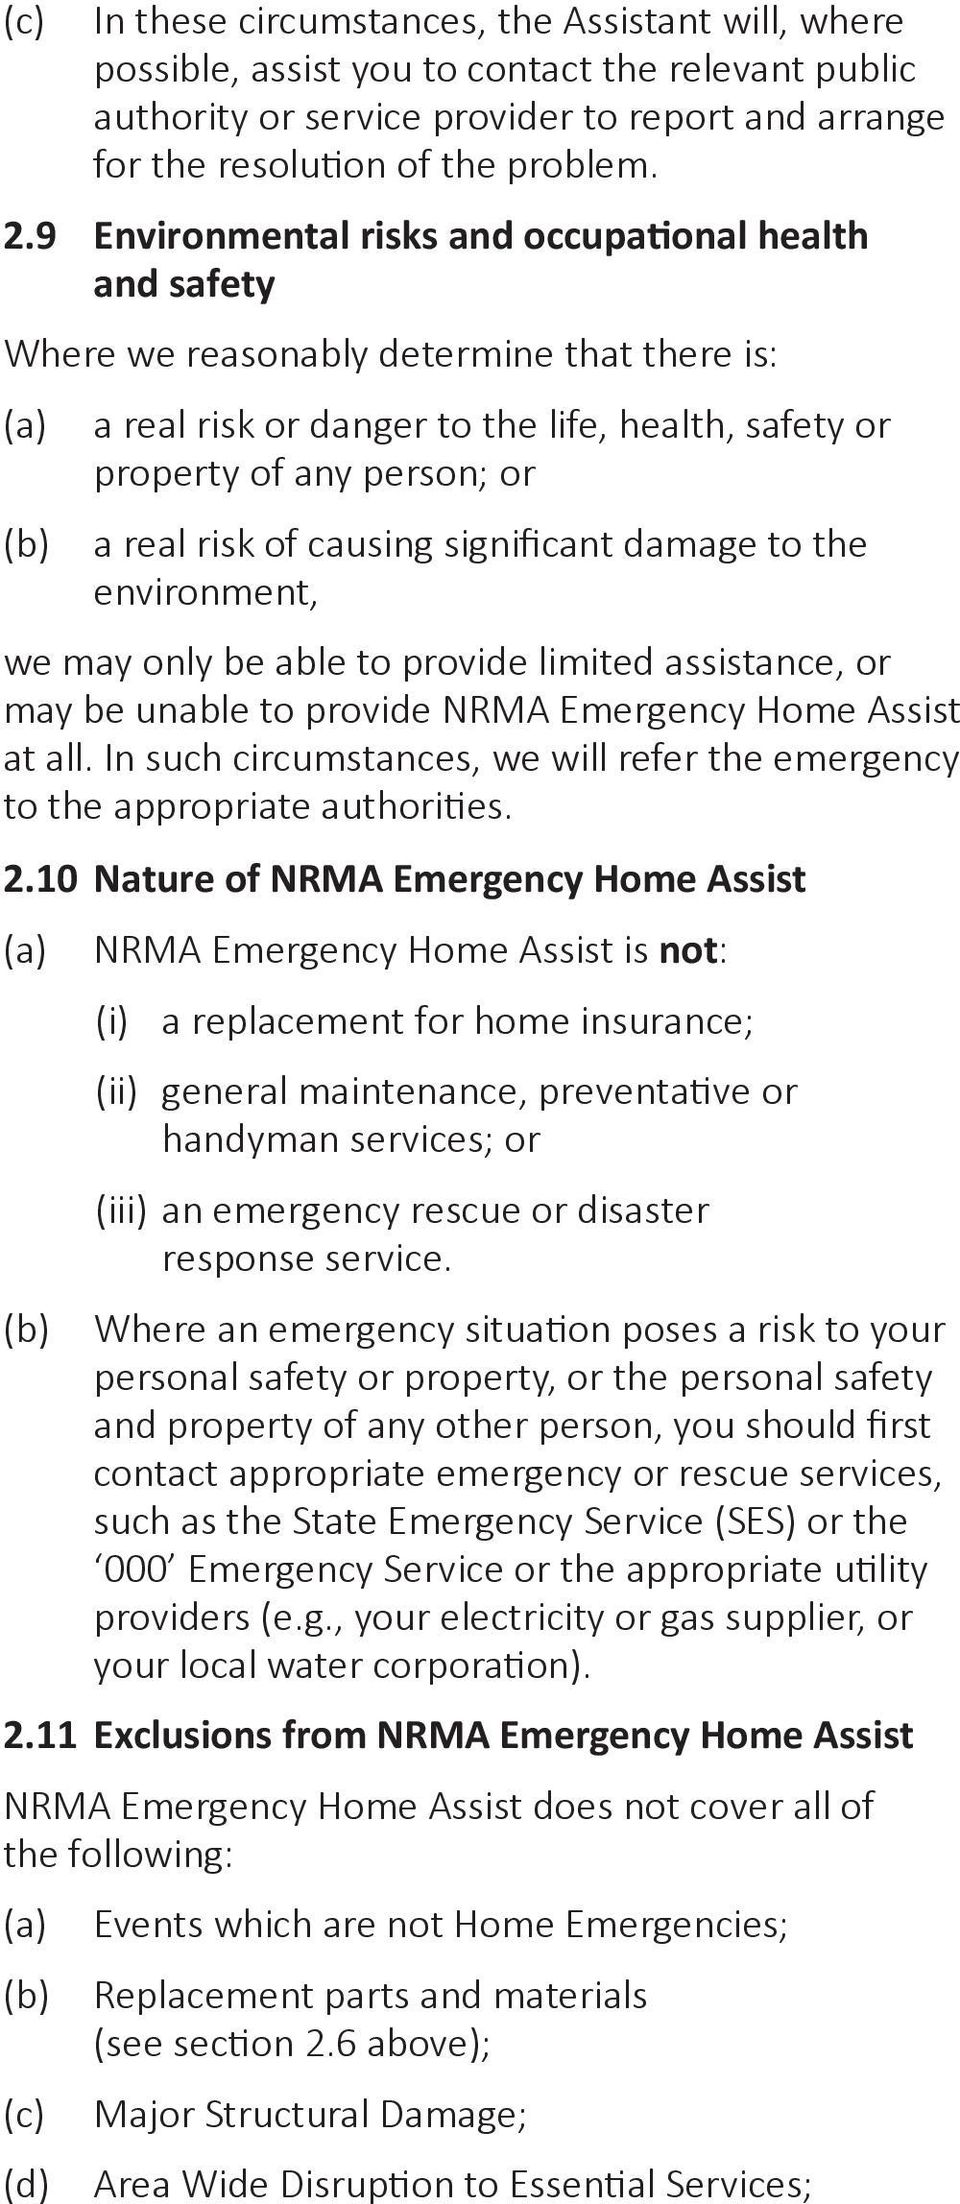 causing significant damage to the environment, we may only be able to provide limited assistance, or may be unable to provide NRMA Emergency Home Assist at all.